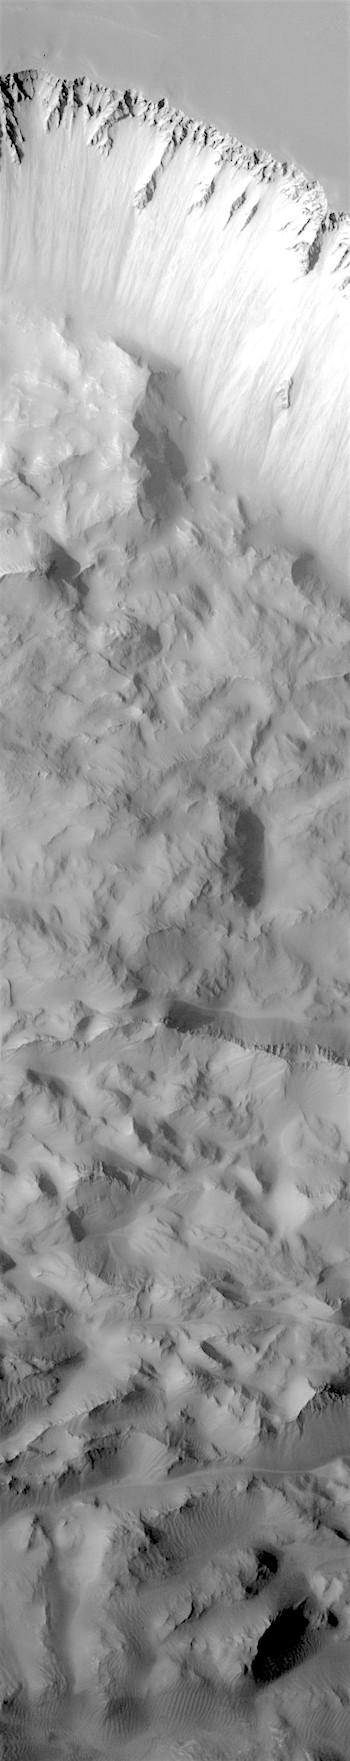 Canyon wall failure in Ius Chasma (THEMIS_IOTD_20180221)